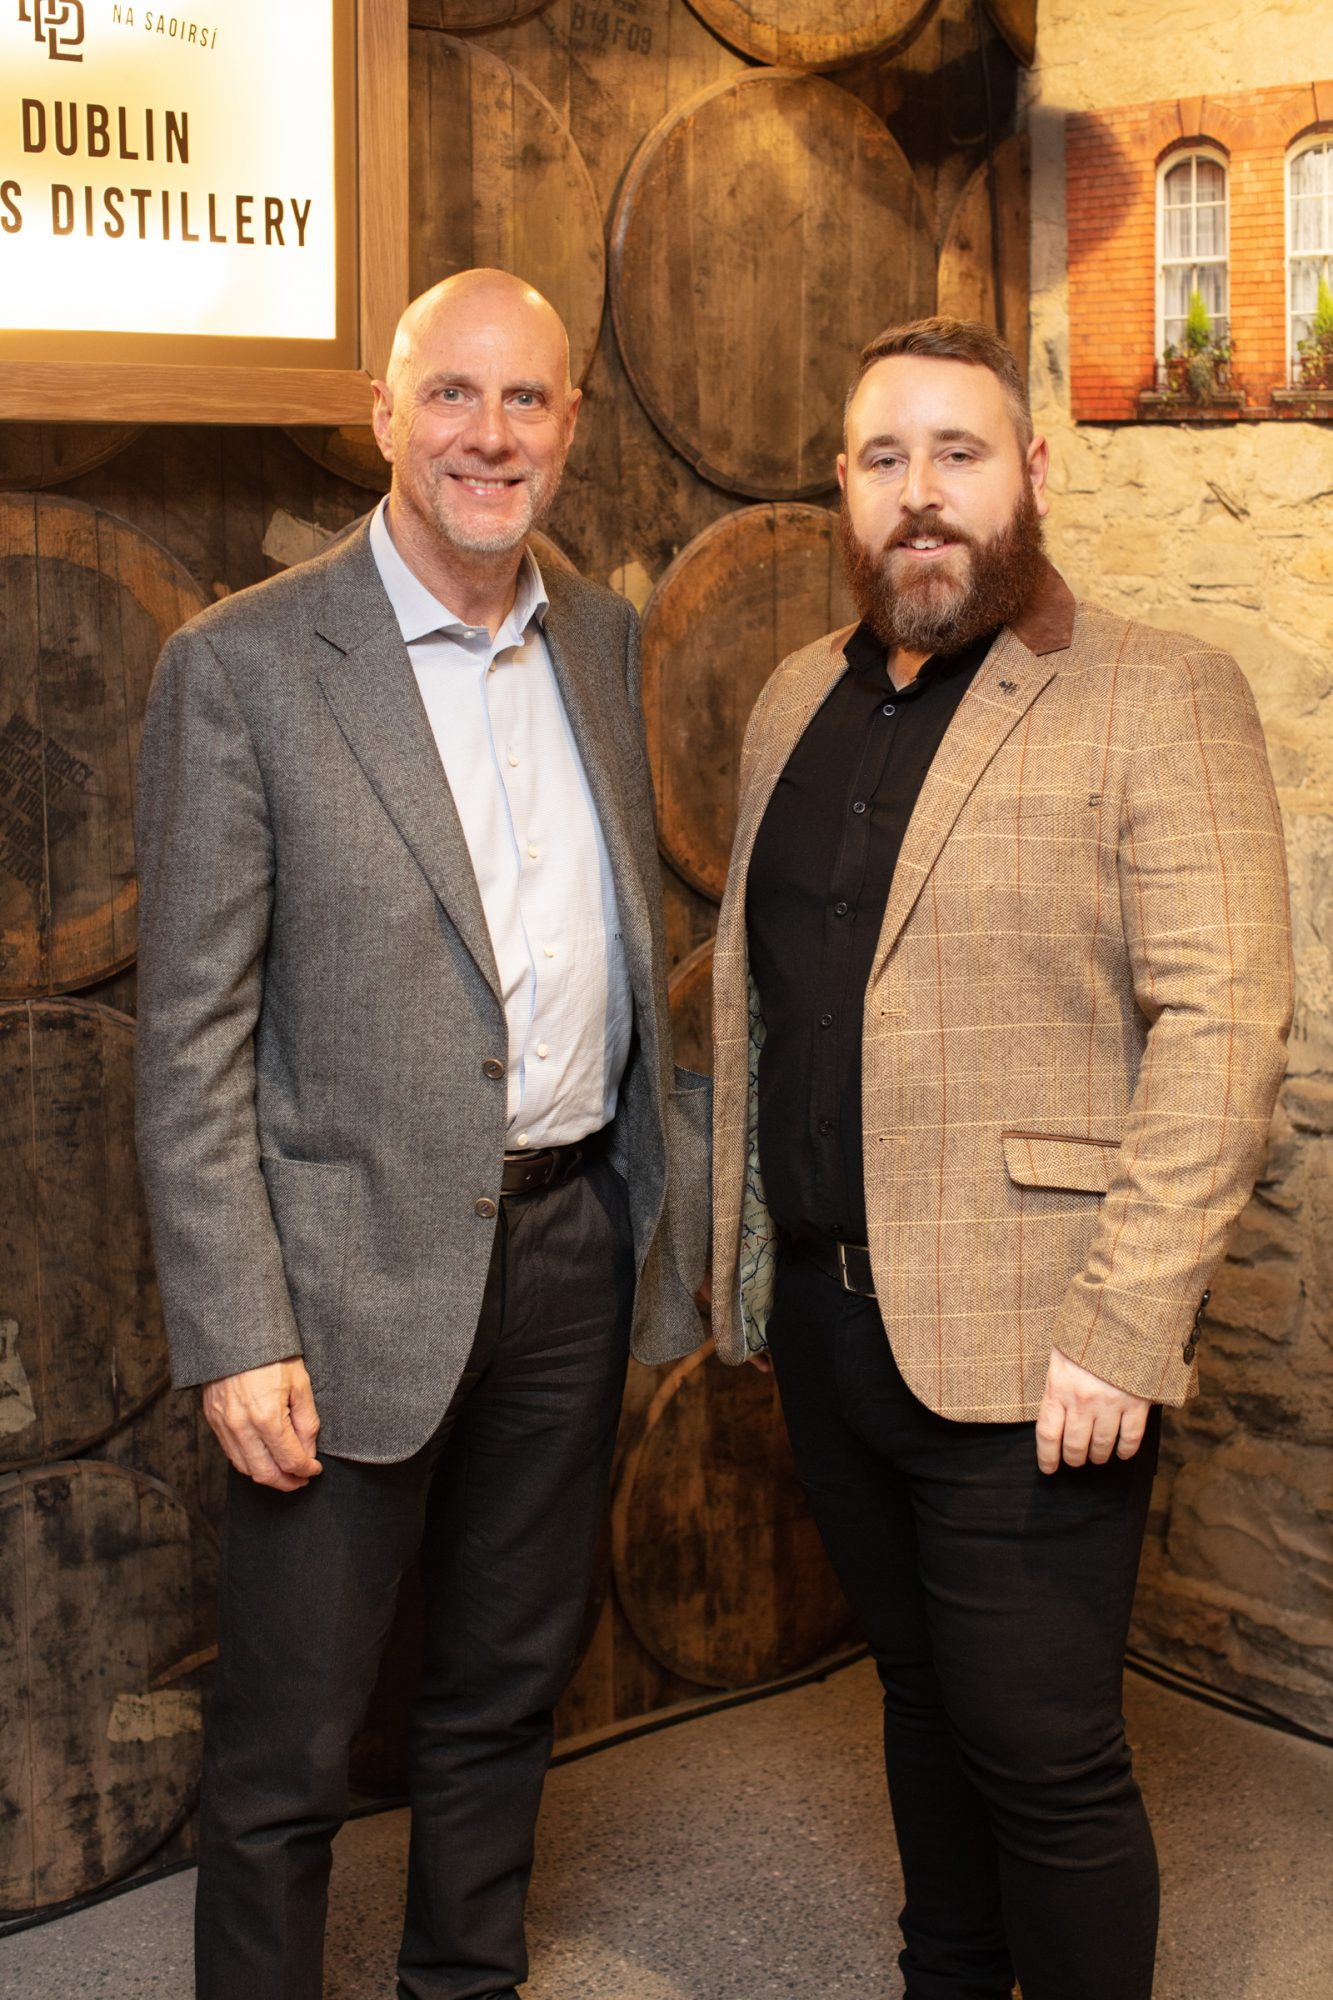 Enzo Visone & Kris Dickenson pictured at the preview of The Dublin Liberties Distillery, the much anticipated new craft distillery in the heart of the Liberties. Photo: Anthony Woods.